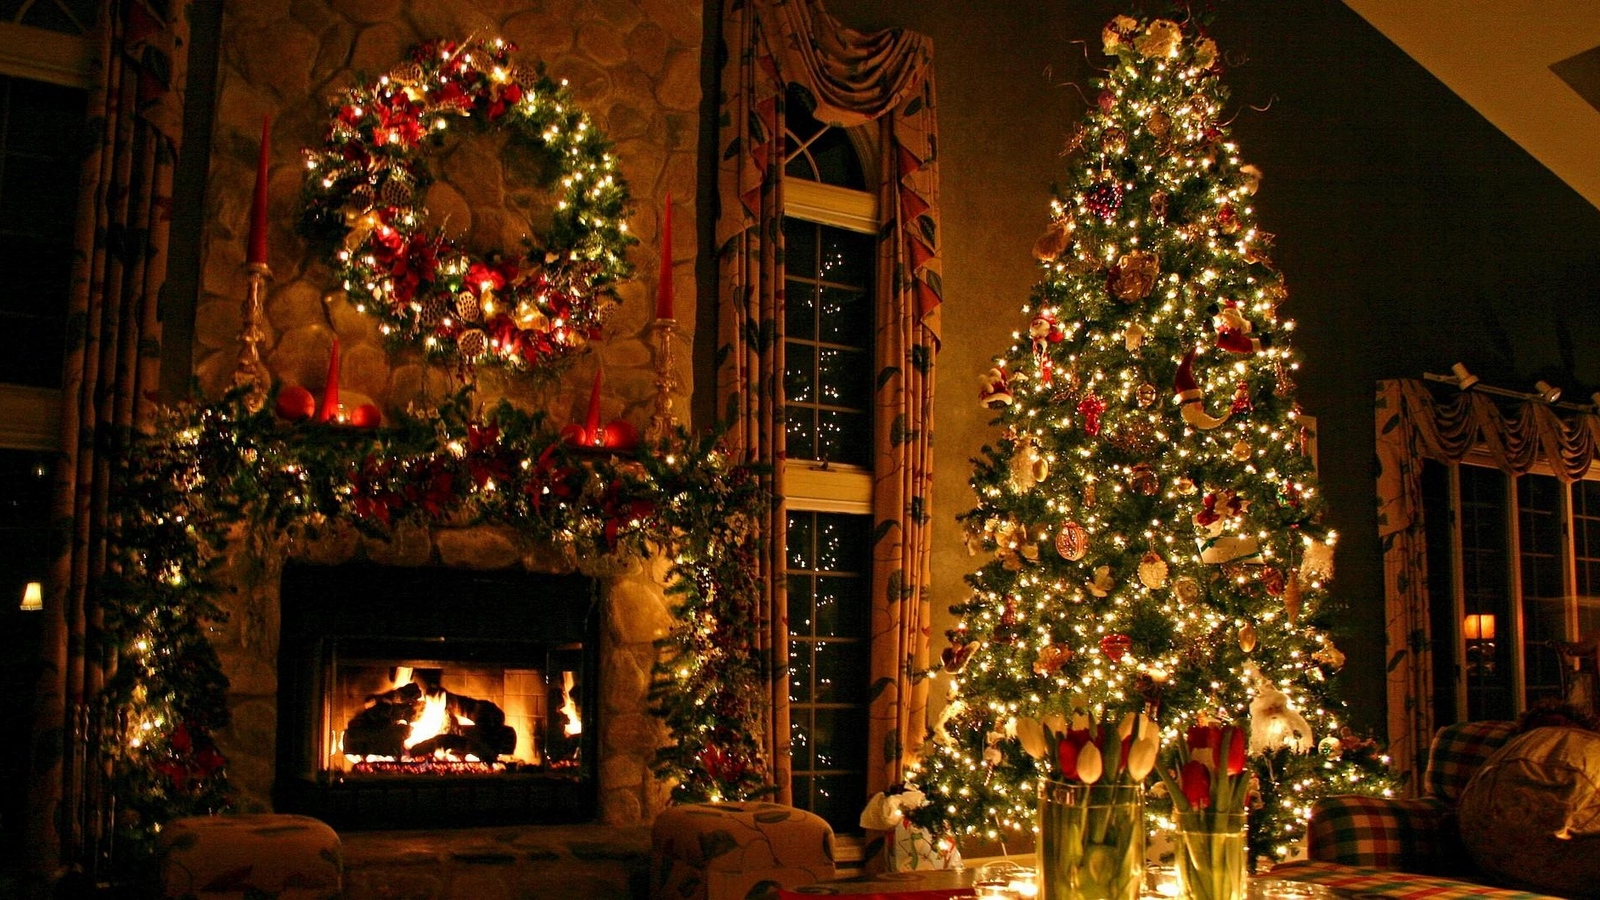 Download wallpaper 1600x900 christmas tree ornaments fireplace 1600x900